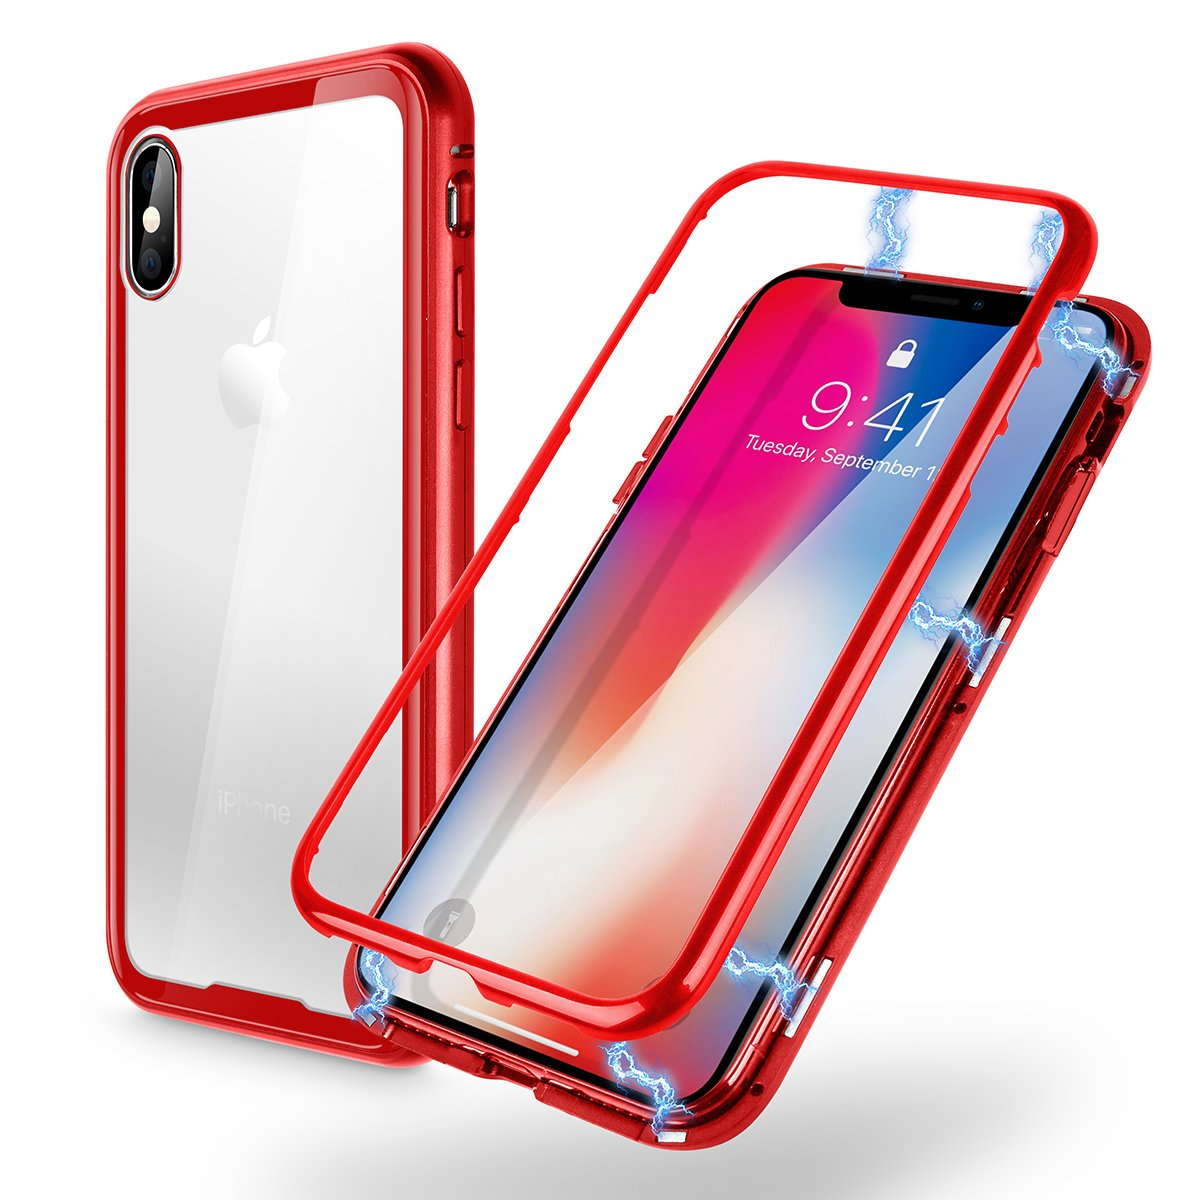 iPhone X Magnetic Metal Frame Tempered Glass Back Case, AICase Luxury Magnetic Adsorption Clear Tempered Glass Hard Back Cover With Built-In Magnets Metal Bumper Framefor Apple iPhone X (Red)